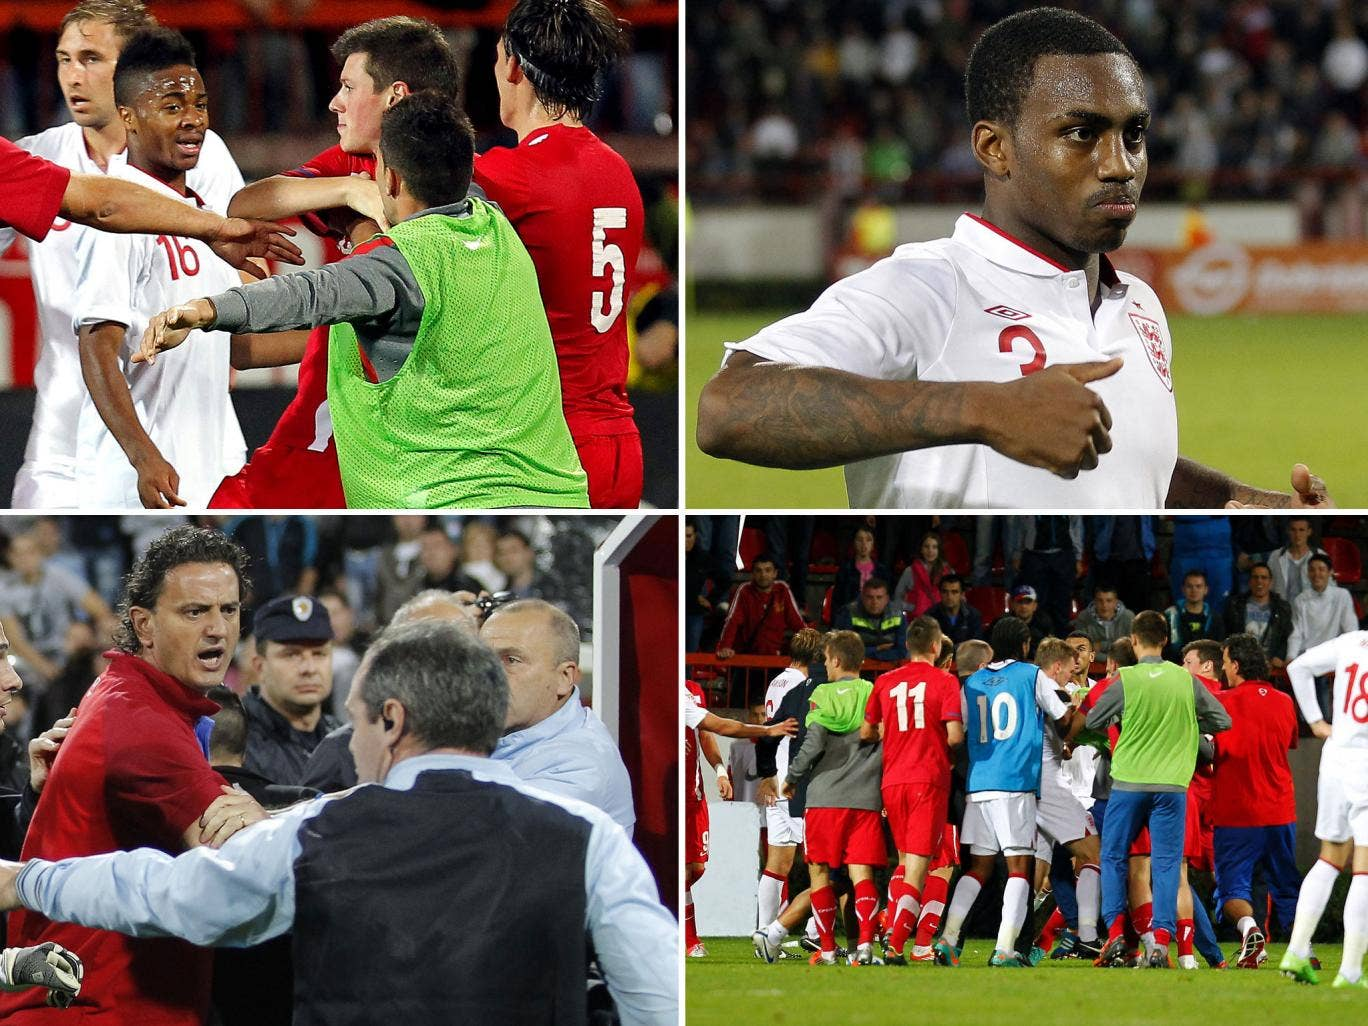 Clockwise from top left: Raheem Sterling amid the fracas, Danny Rose mimics the fans' taunts, the squad players enter the fray and Serbian assistant coach Dejan Govedarica struggles to separate his players